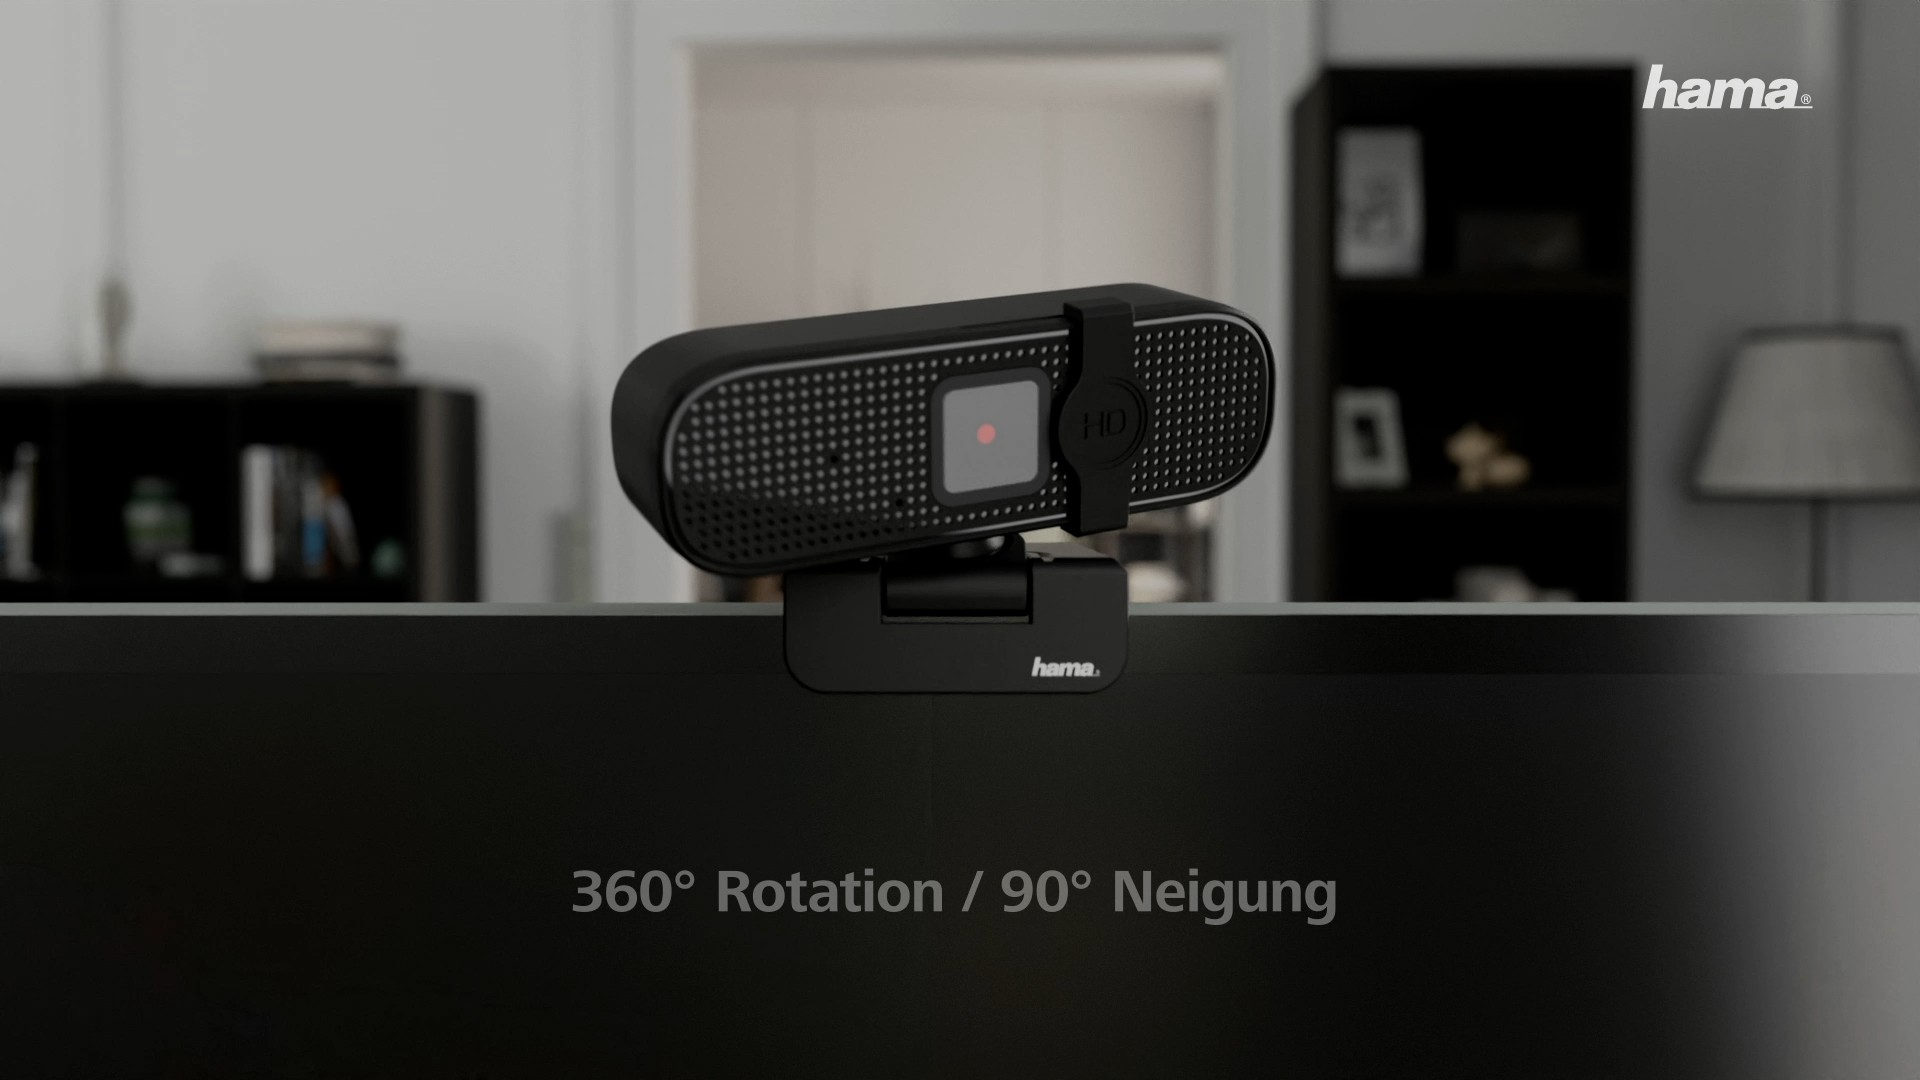 Motion Design Studios hama Webcam